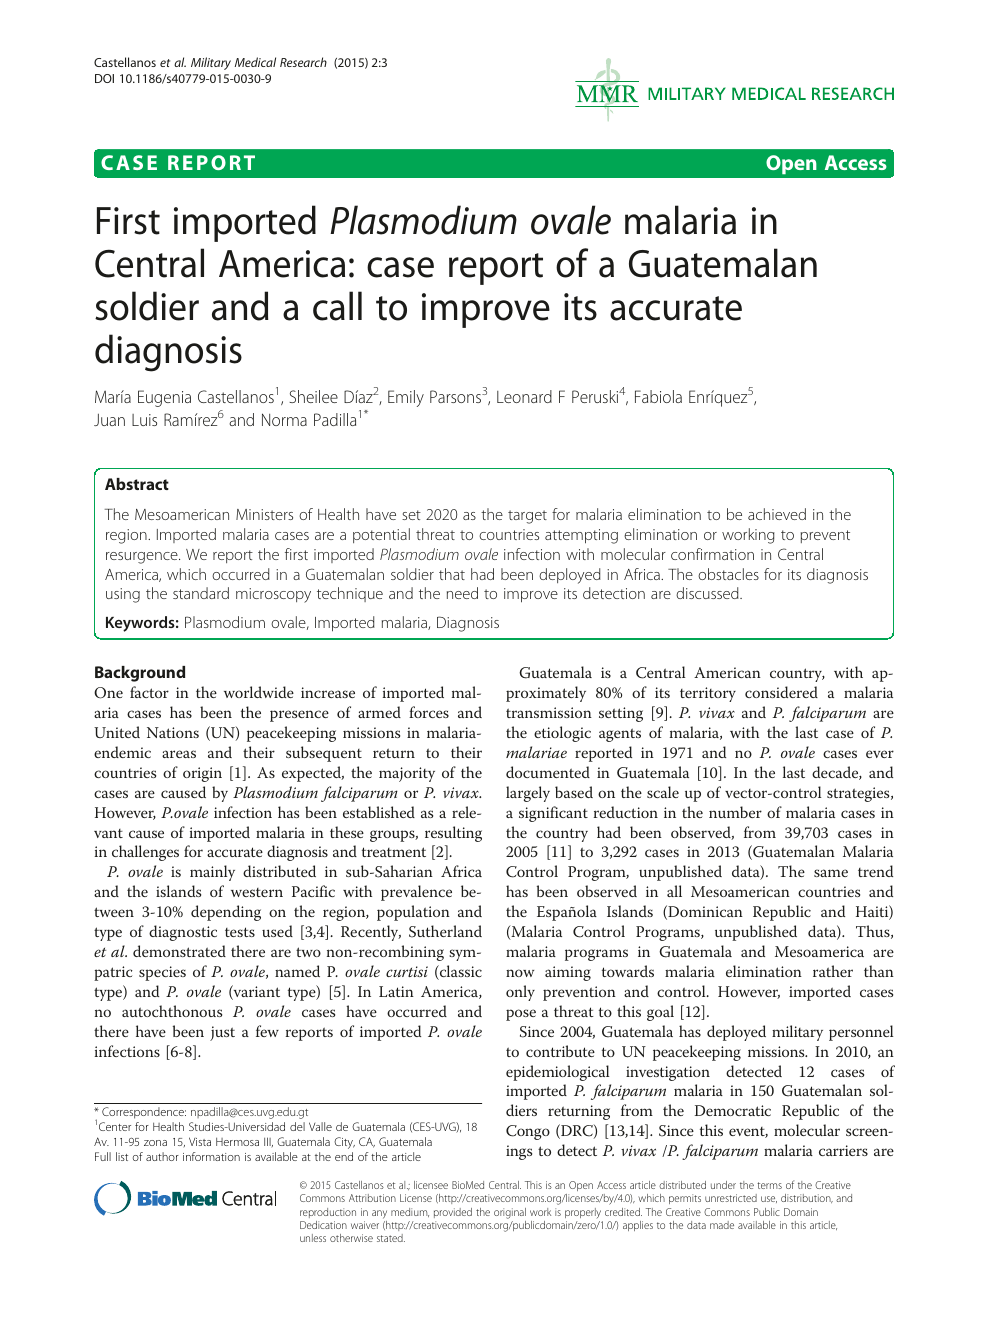 First imported Plasmodium ovale malaria in Central America ... on map of central america, western central america, cholera central america, yellow fever central america, map of malaria in latin america, polio central america, rivers in central america, malaria map south america, schistosomiasis central america, measles central america, hiv/aids central america, syphilis central america, poverty central america, ebola central america, dengue fever central america, typhus central america, malaria north america, leishmaniasis central america,